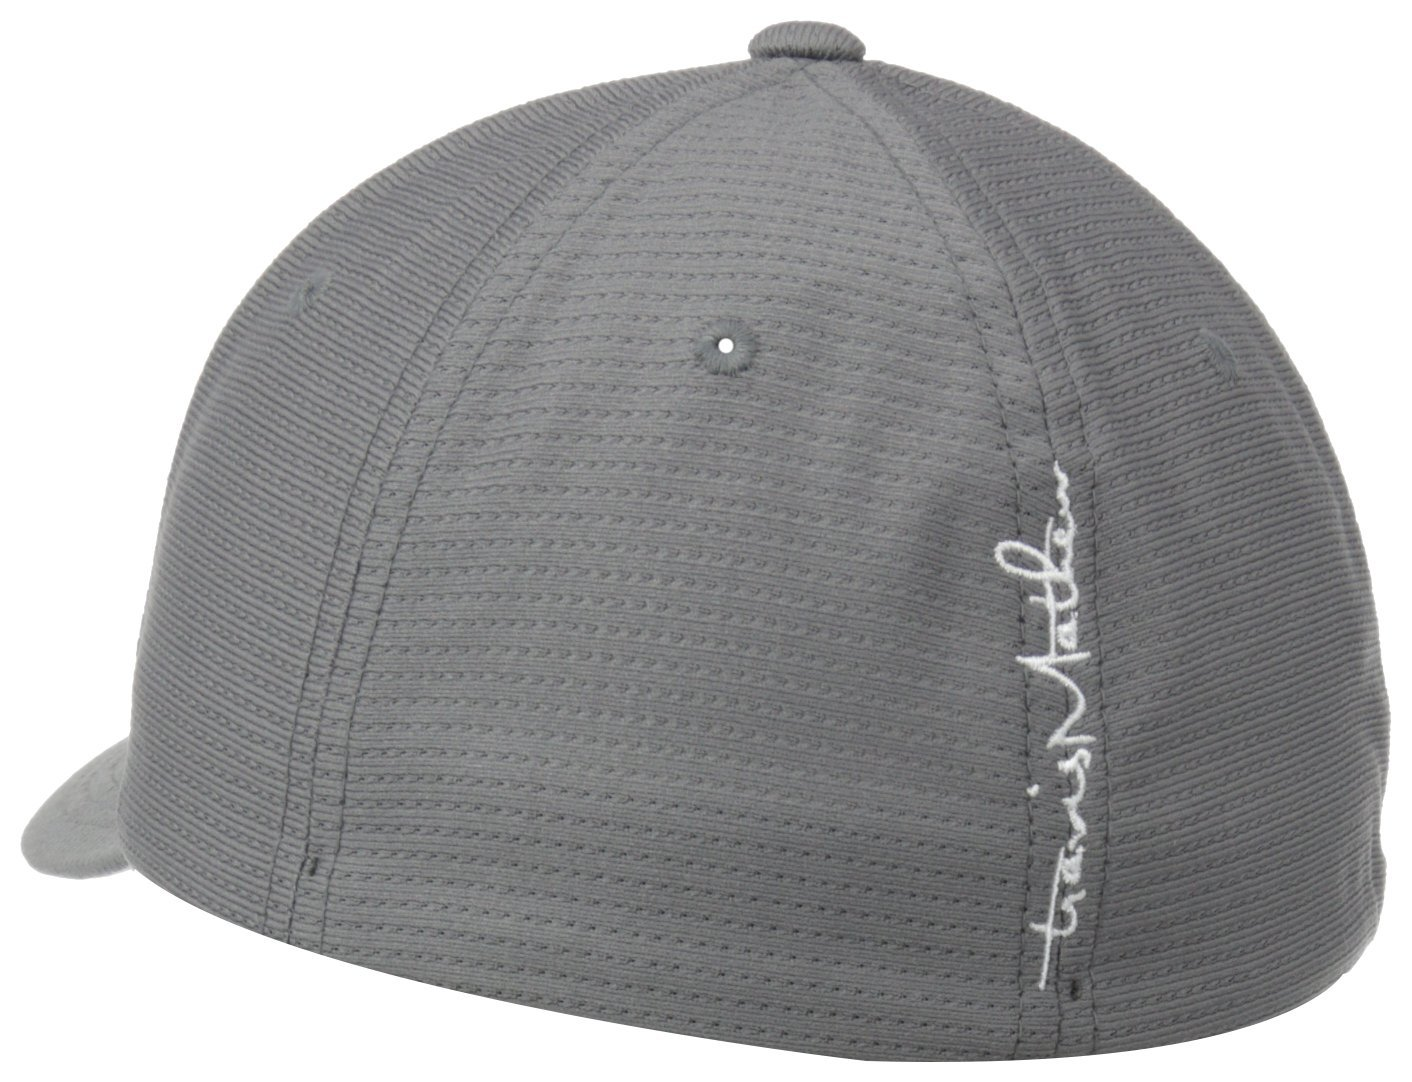 I own over 6 Travis Mathew hats, all of them are different in their own way. But they all fit the same, if you sweat, every hat will show sweat marks, reading comments of people complaining about that is pointless, this hats fits the best and the most comfortable out of all the TM hats I have.